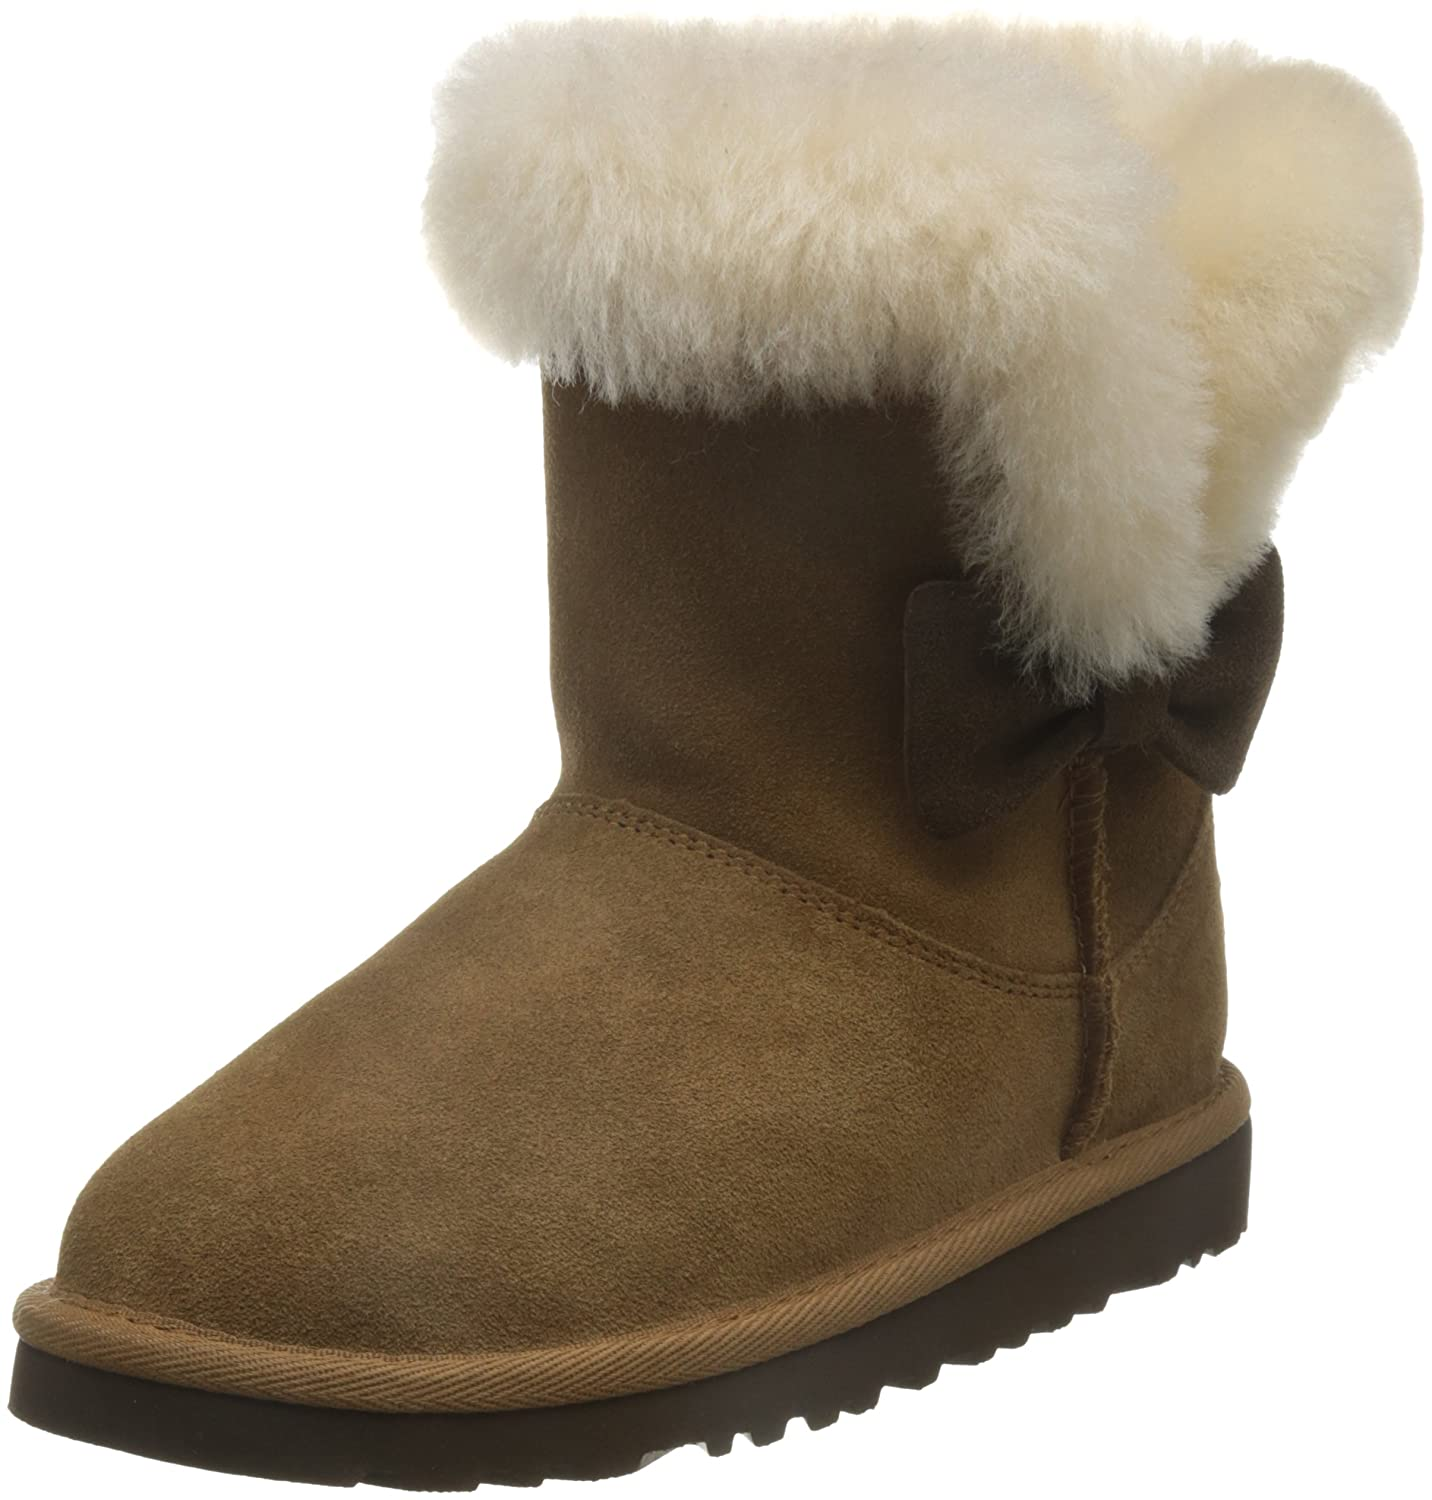 4801eeb120b UGG Kids Girl's Kourtney (Little Kid/Big Kid) Boots